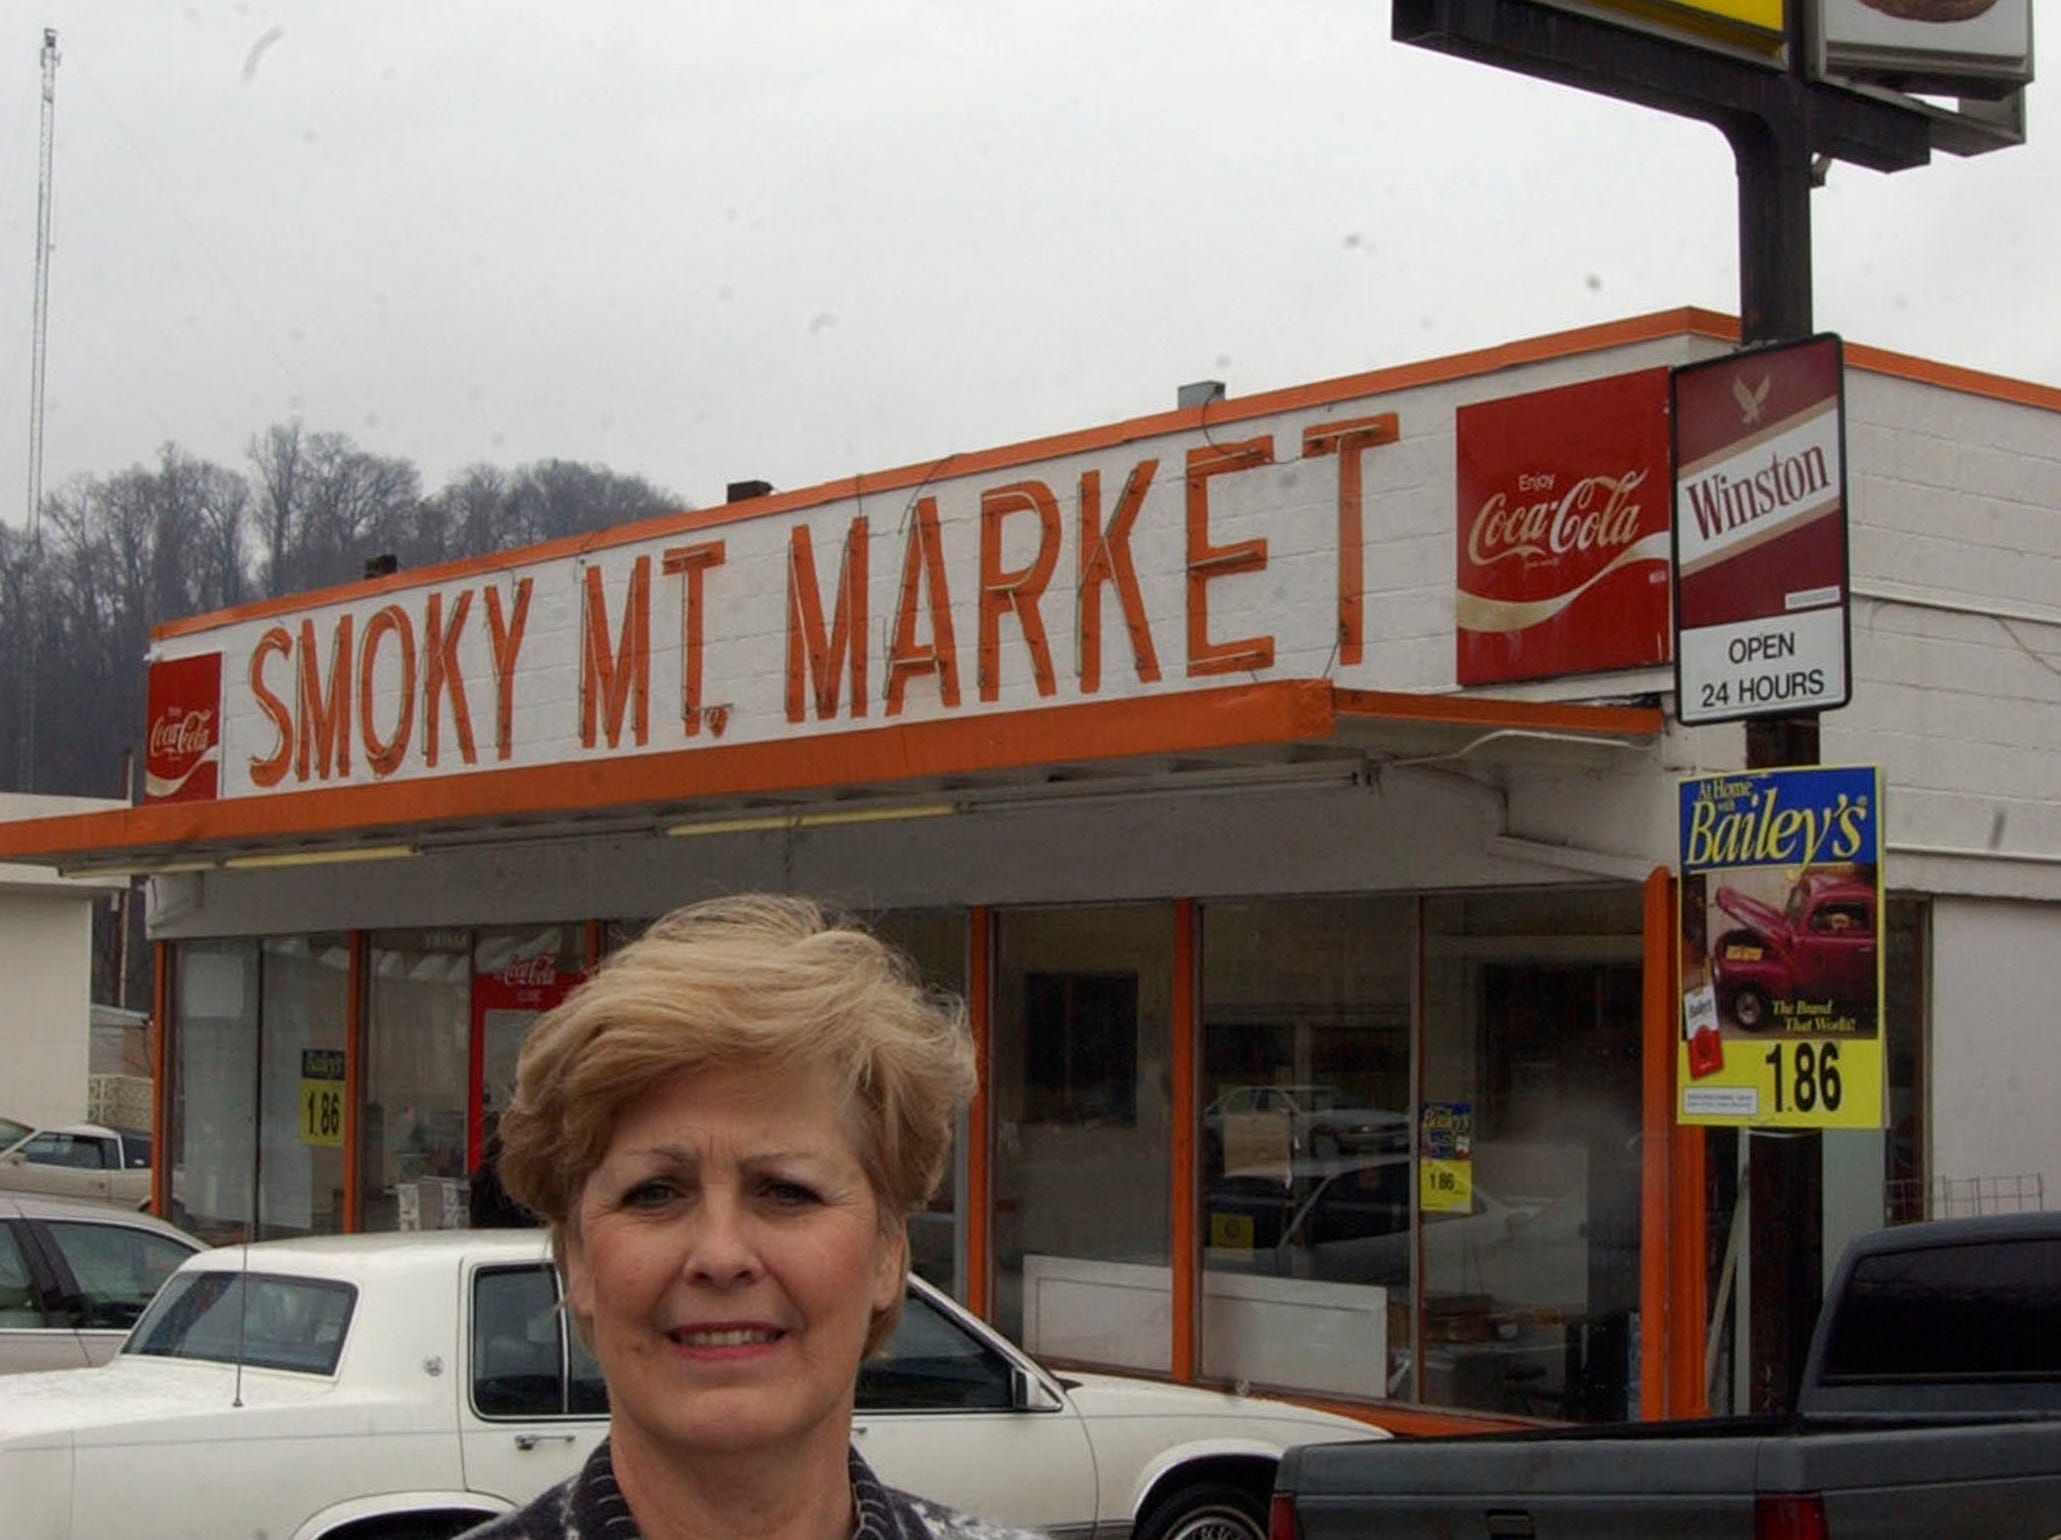 Patt Rushing stands in front of the original Smokey Mountain Market on Chapman Highway in 2001. After almost 30 years in businees, Smoky Mountain Market has closed its doors for good. The original store, known for their hot dogs, was a fixture in Knoxville.